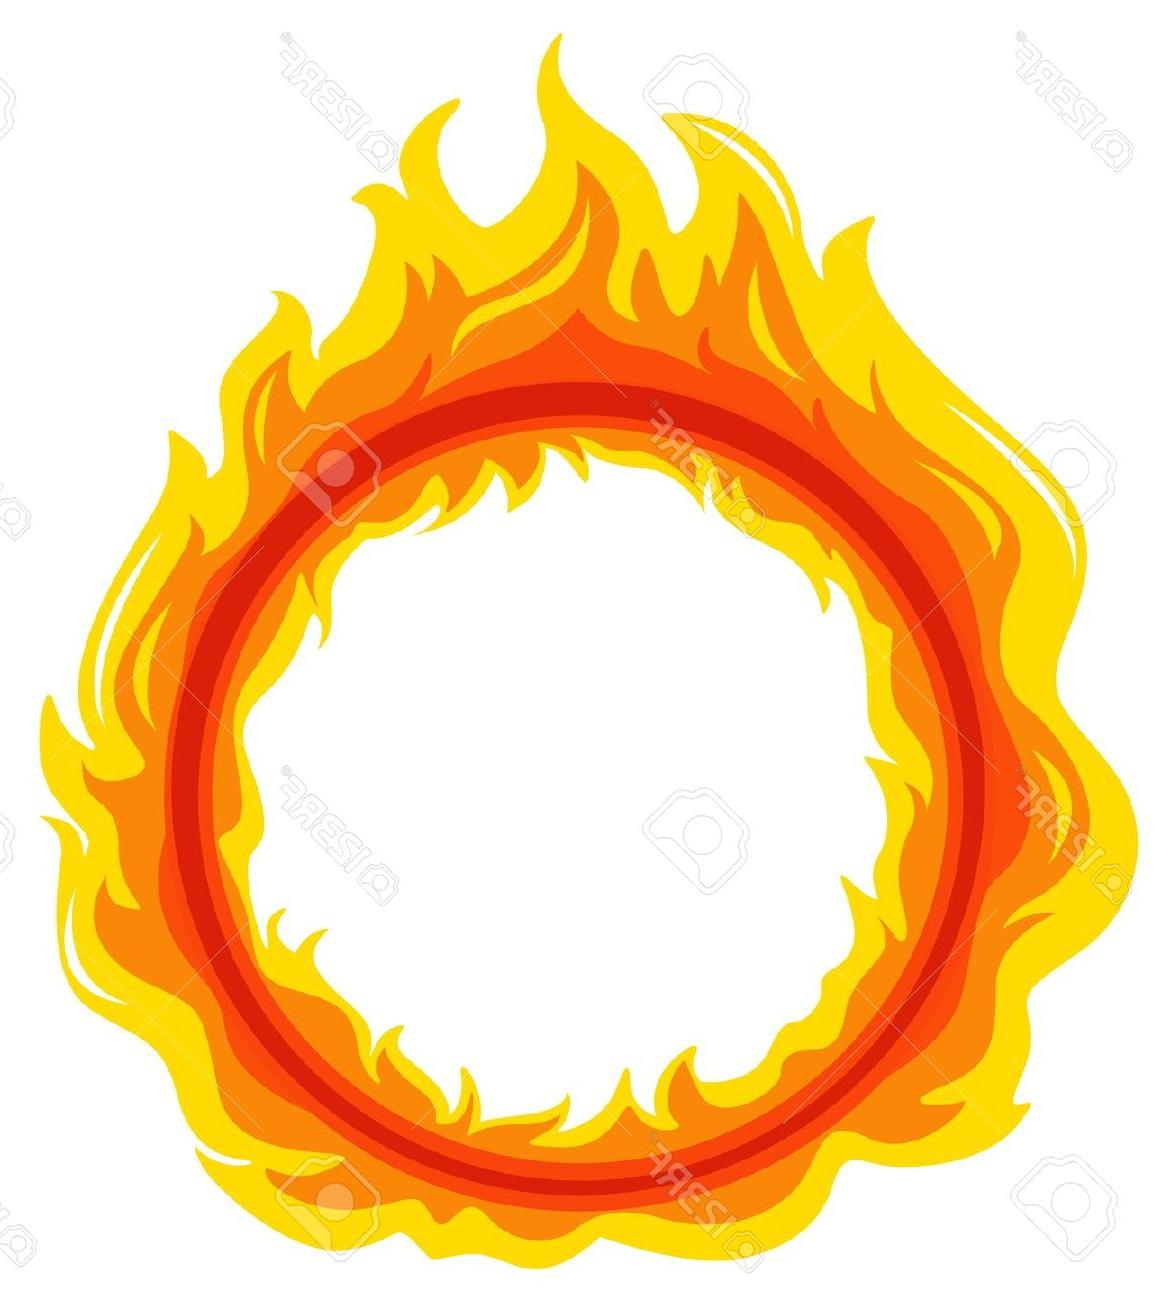 1171x1300 Flames Clipart Flame Outline